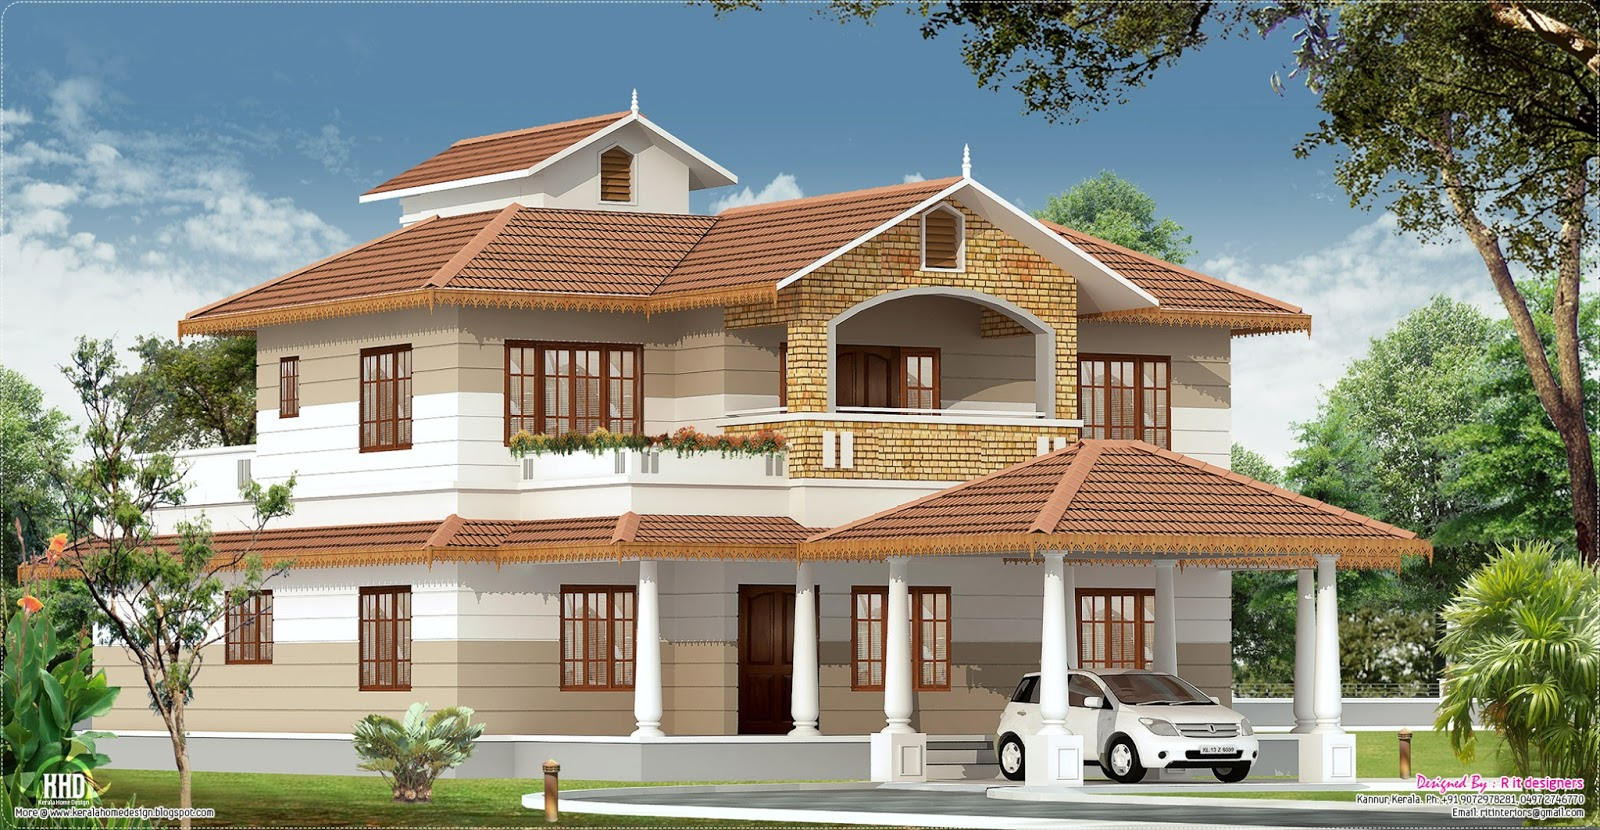 2700 kerala home with interior designs kerala for Homes models and plans